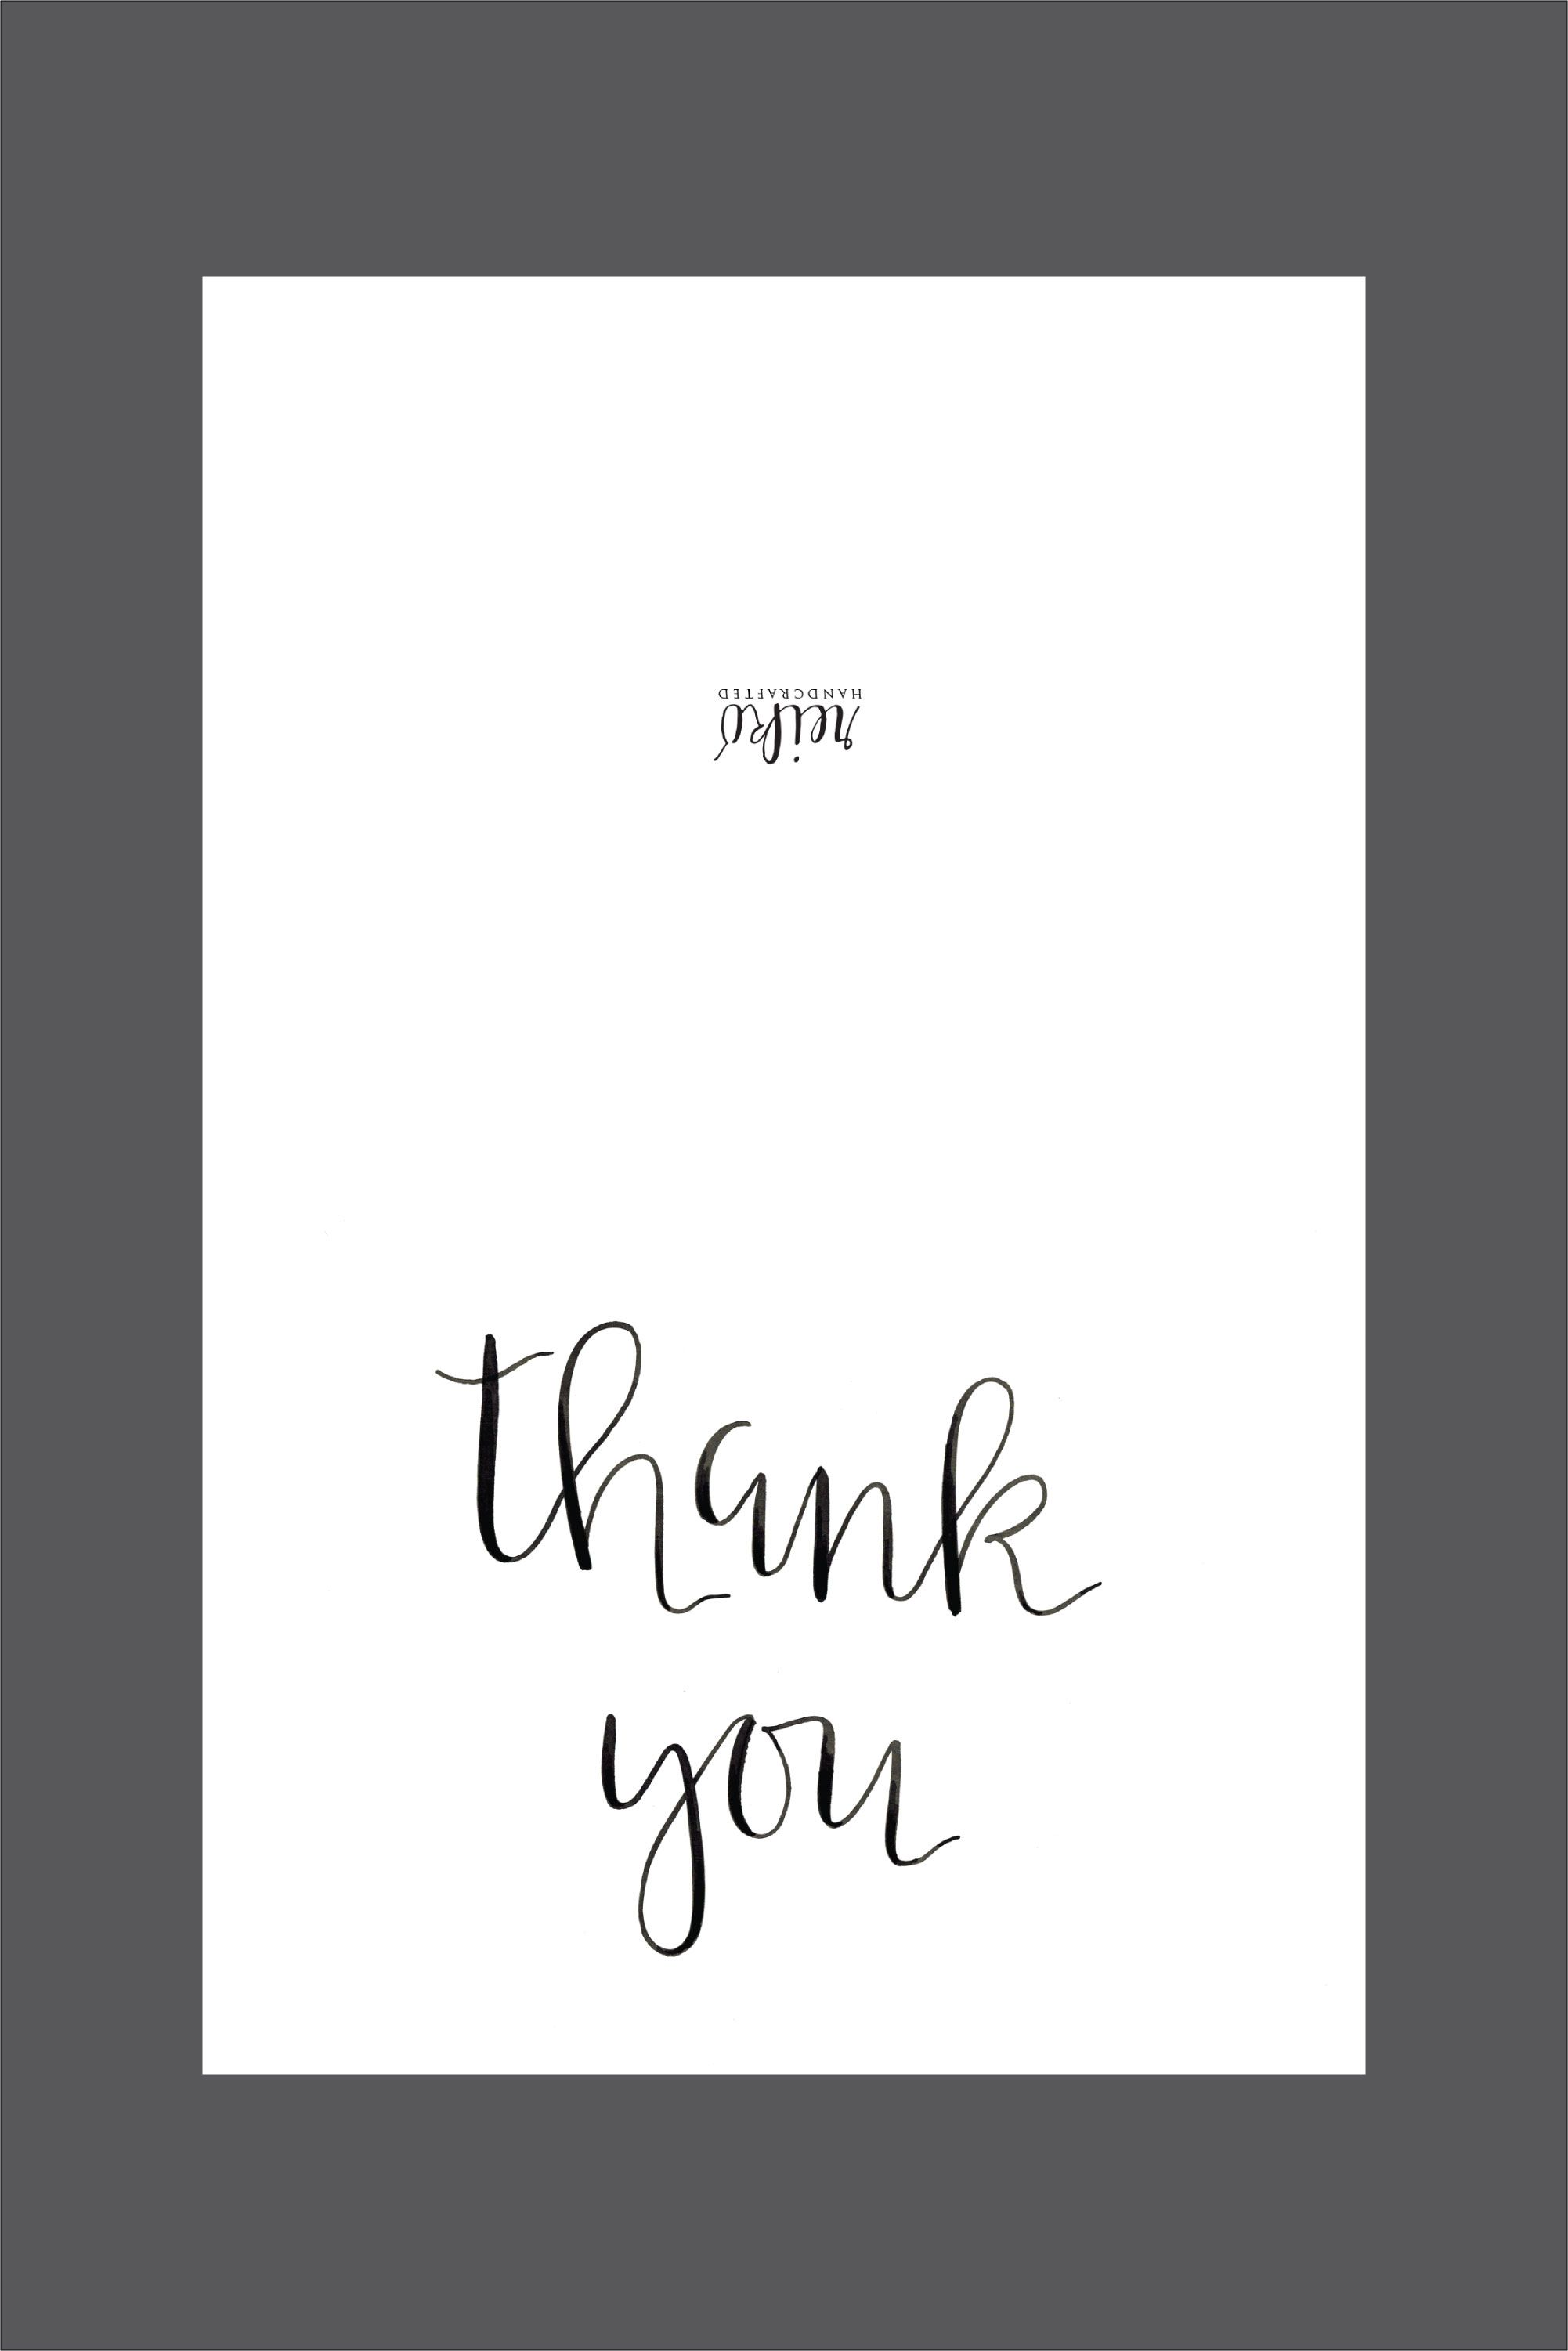 006 Shocking Thank You Note Template Free Printable Design Full